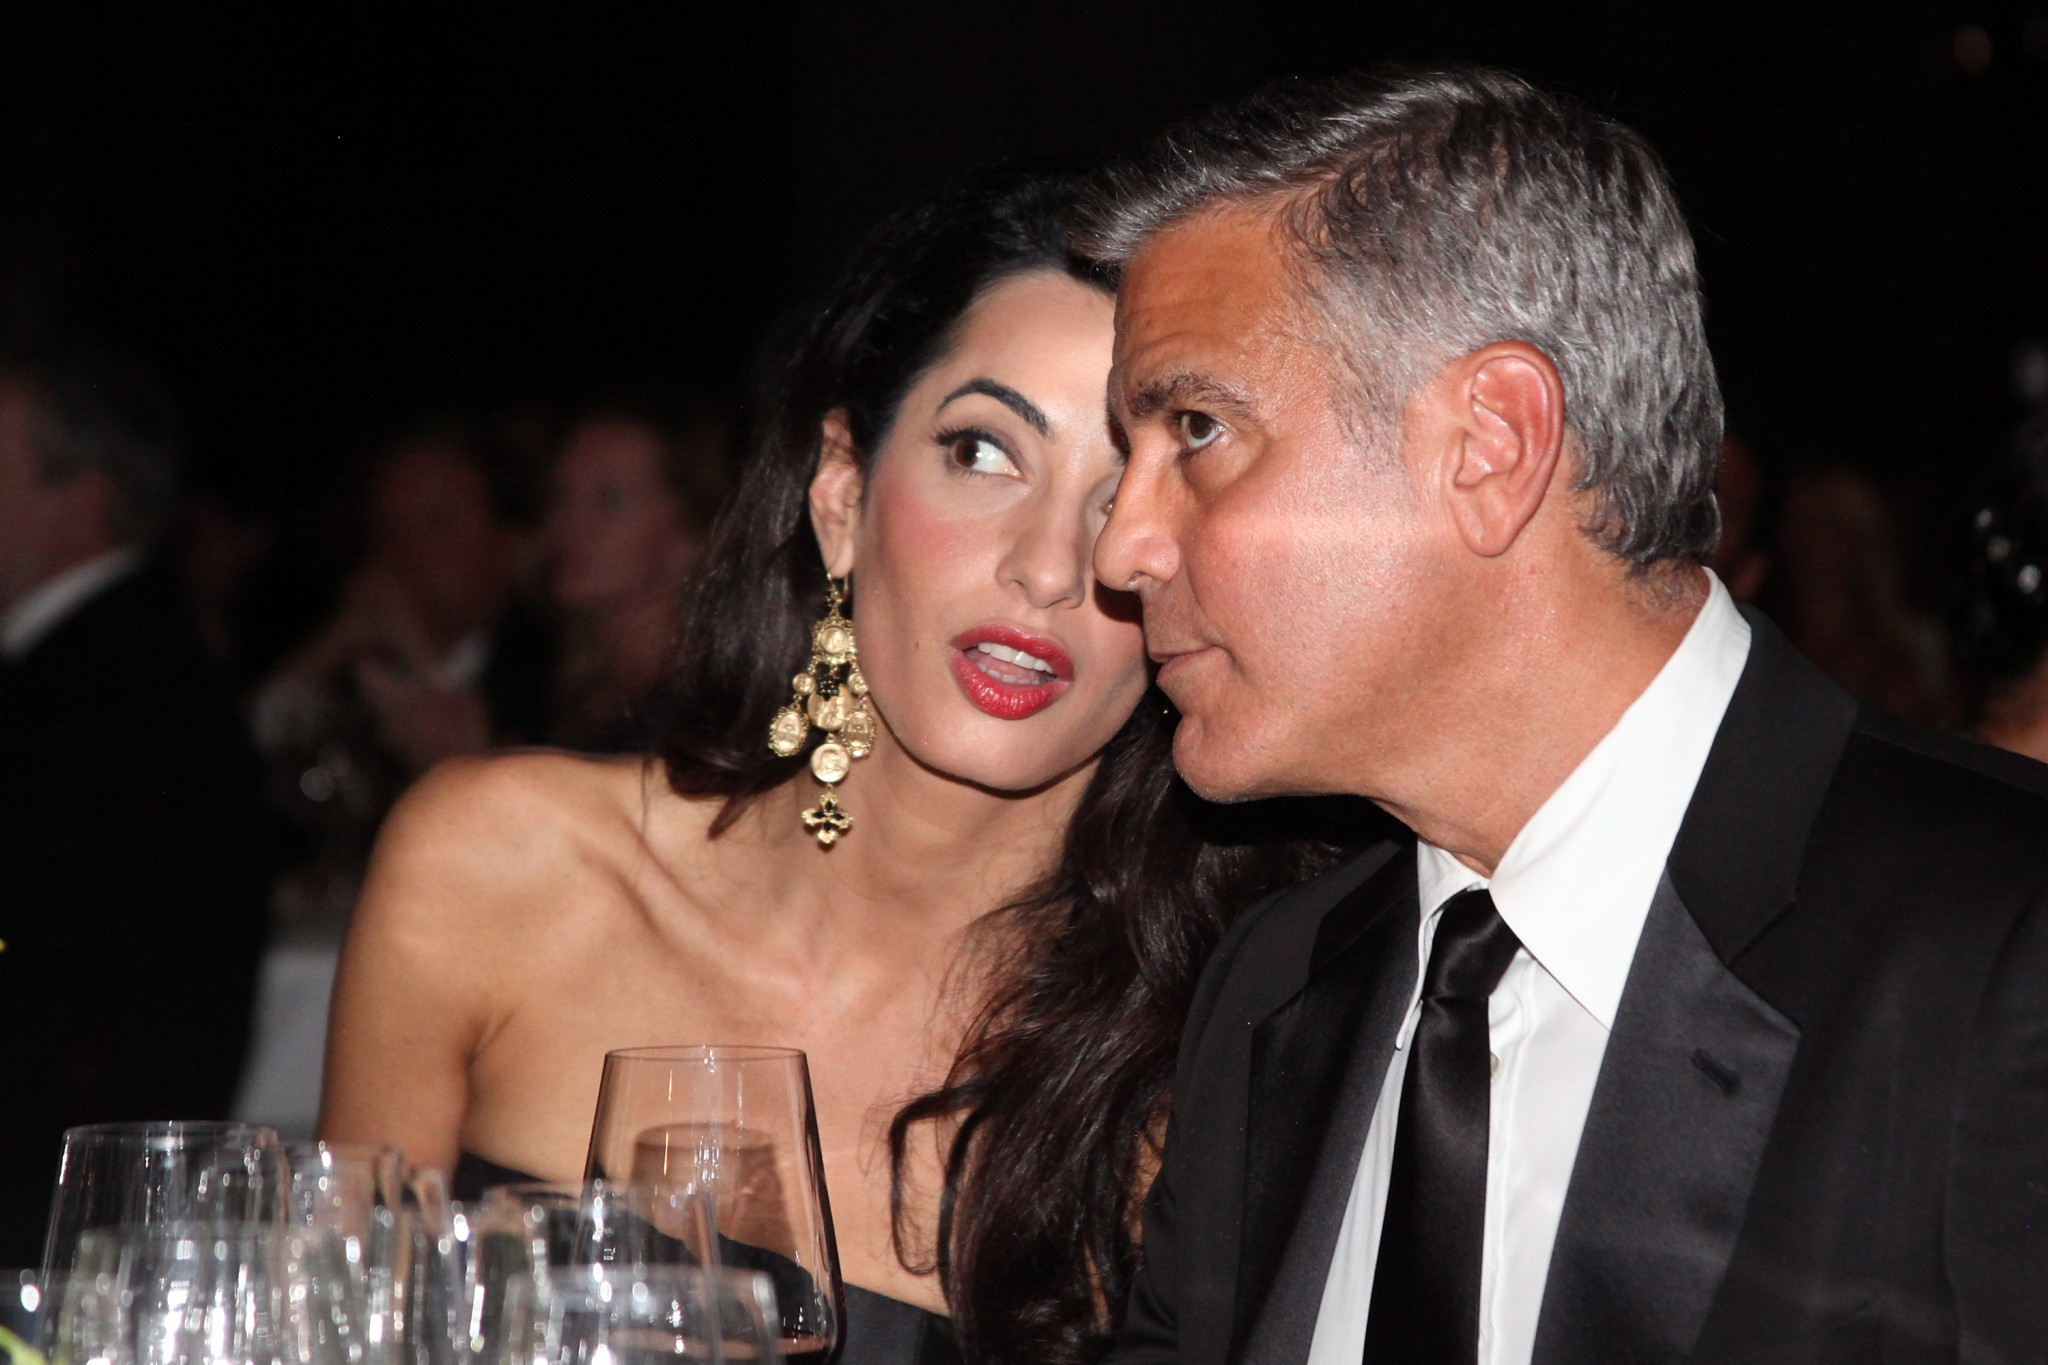 George Clooney out with wife Amal Alamuddin